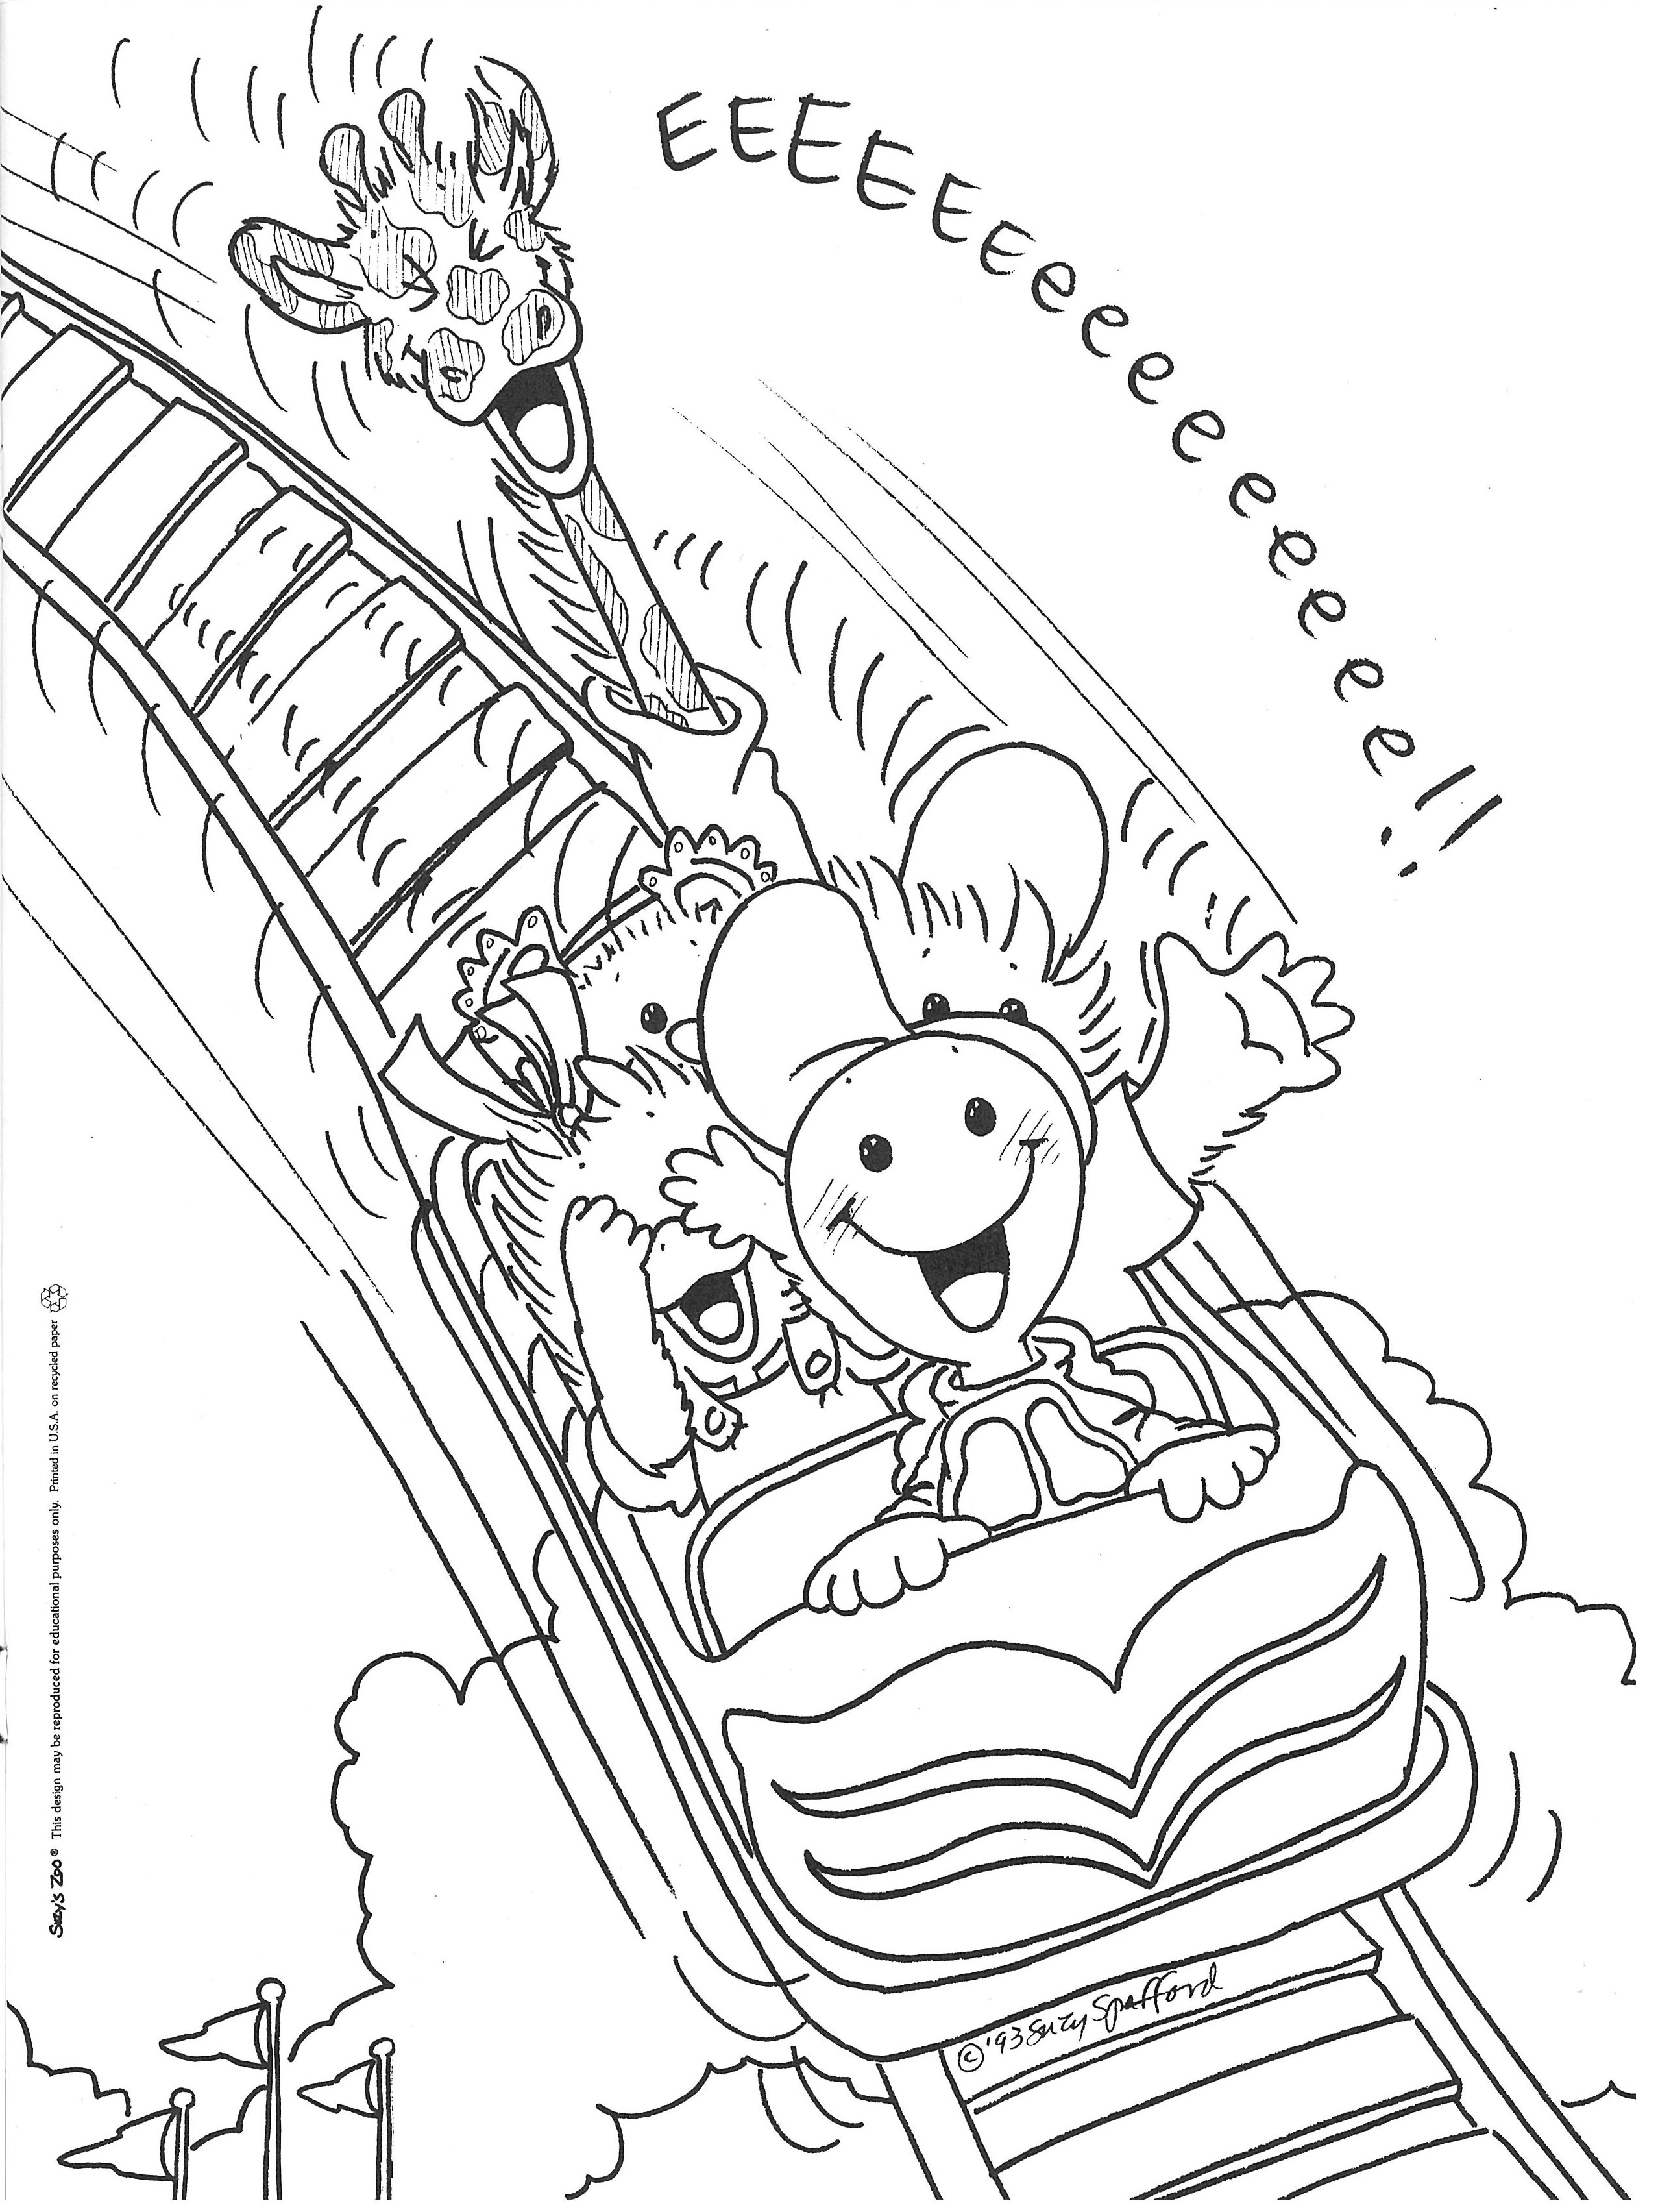 coaster coloring pages suzy s zoo official site suzy s zoo fun stuff